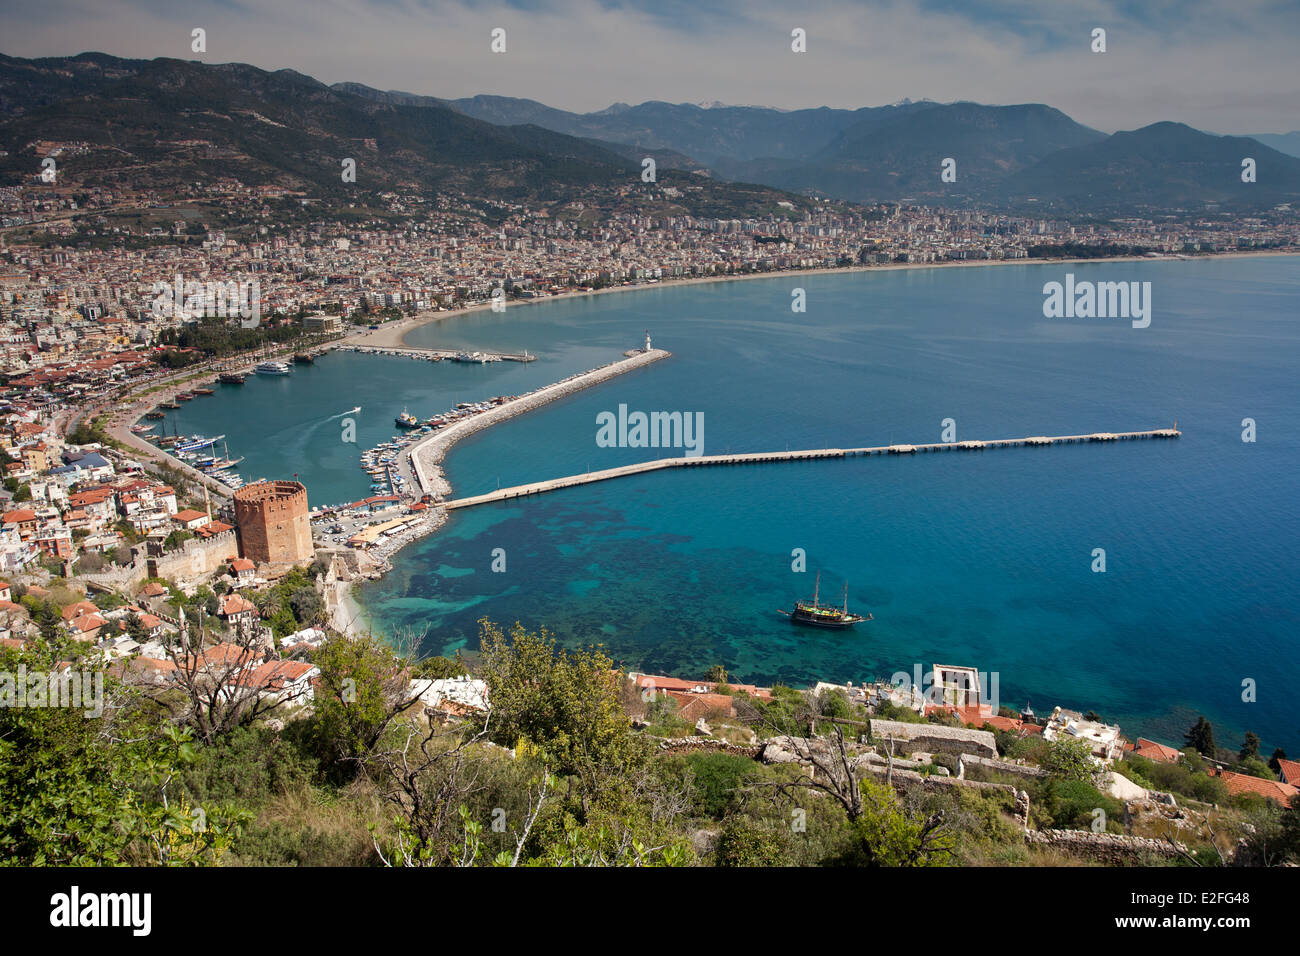 View from Uphill: Alanya Port and Red Tower - Stock Image